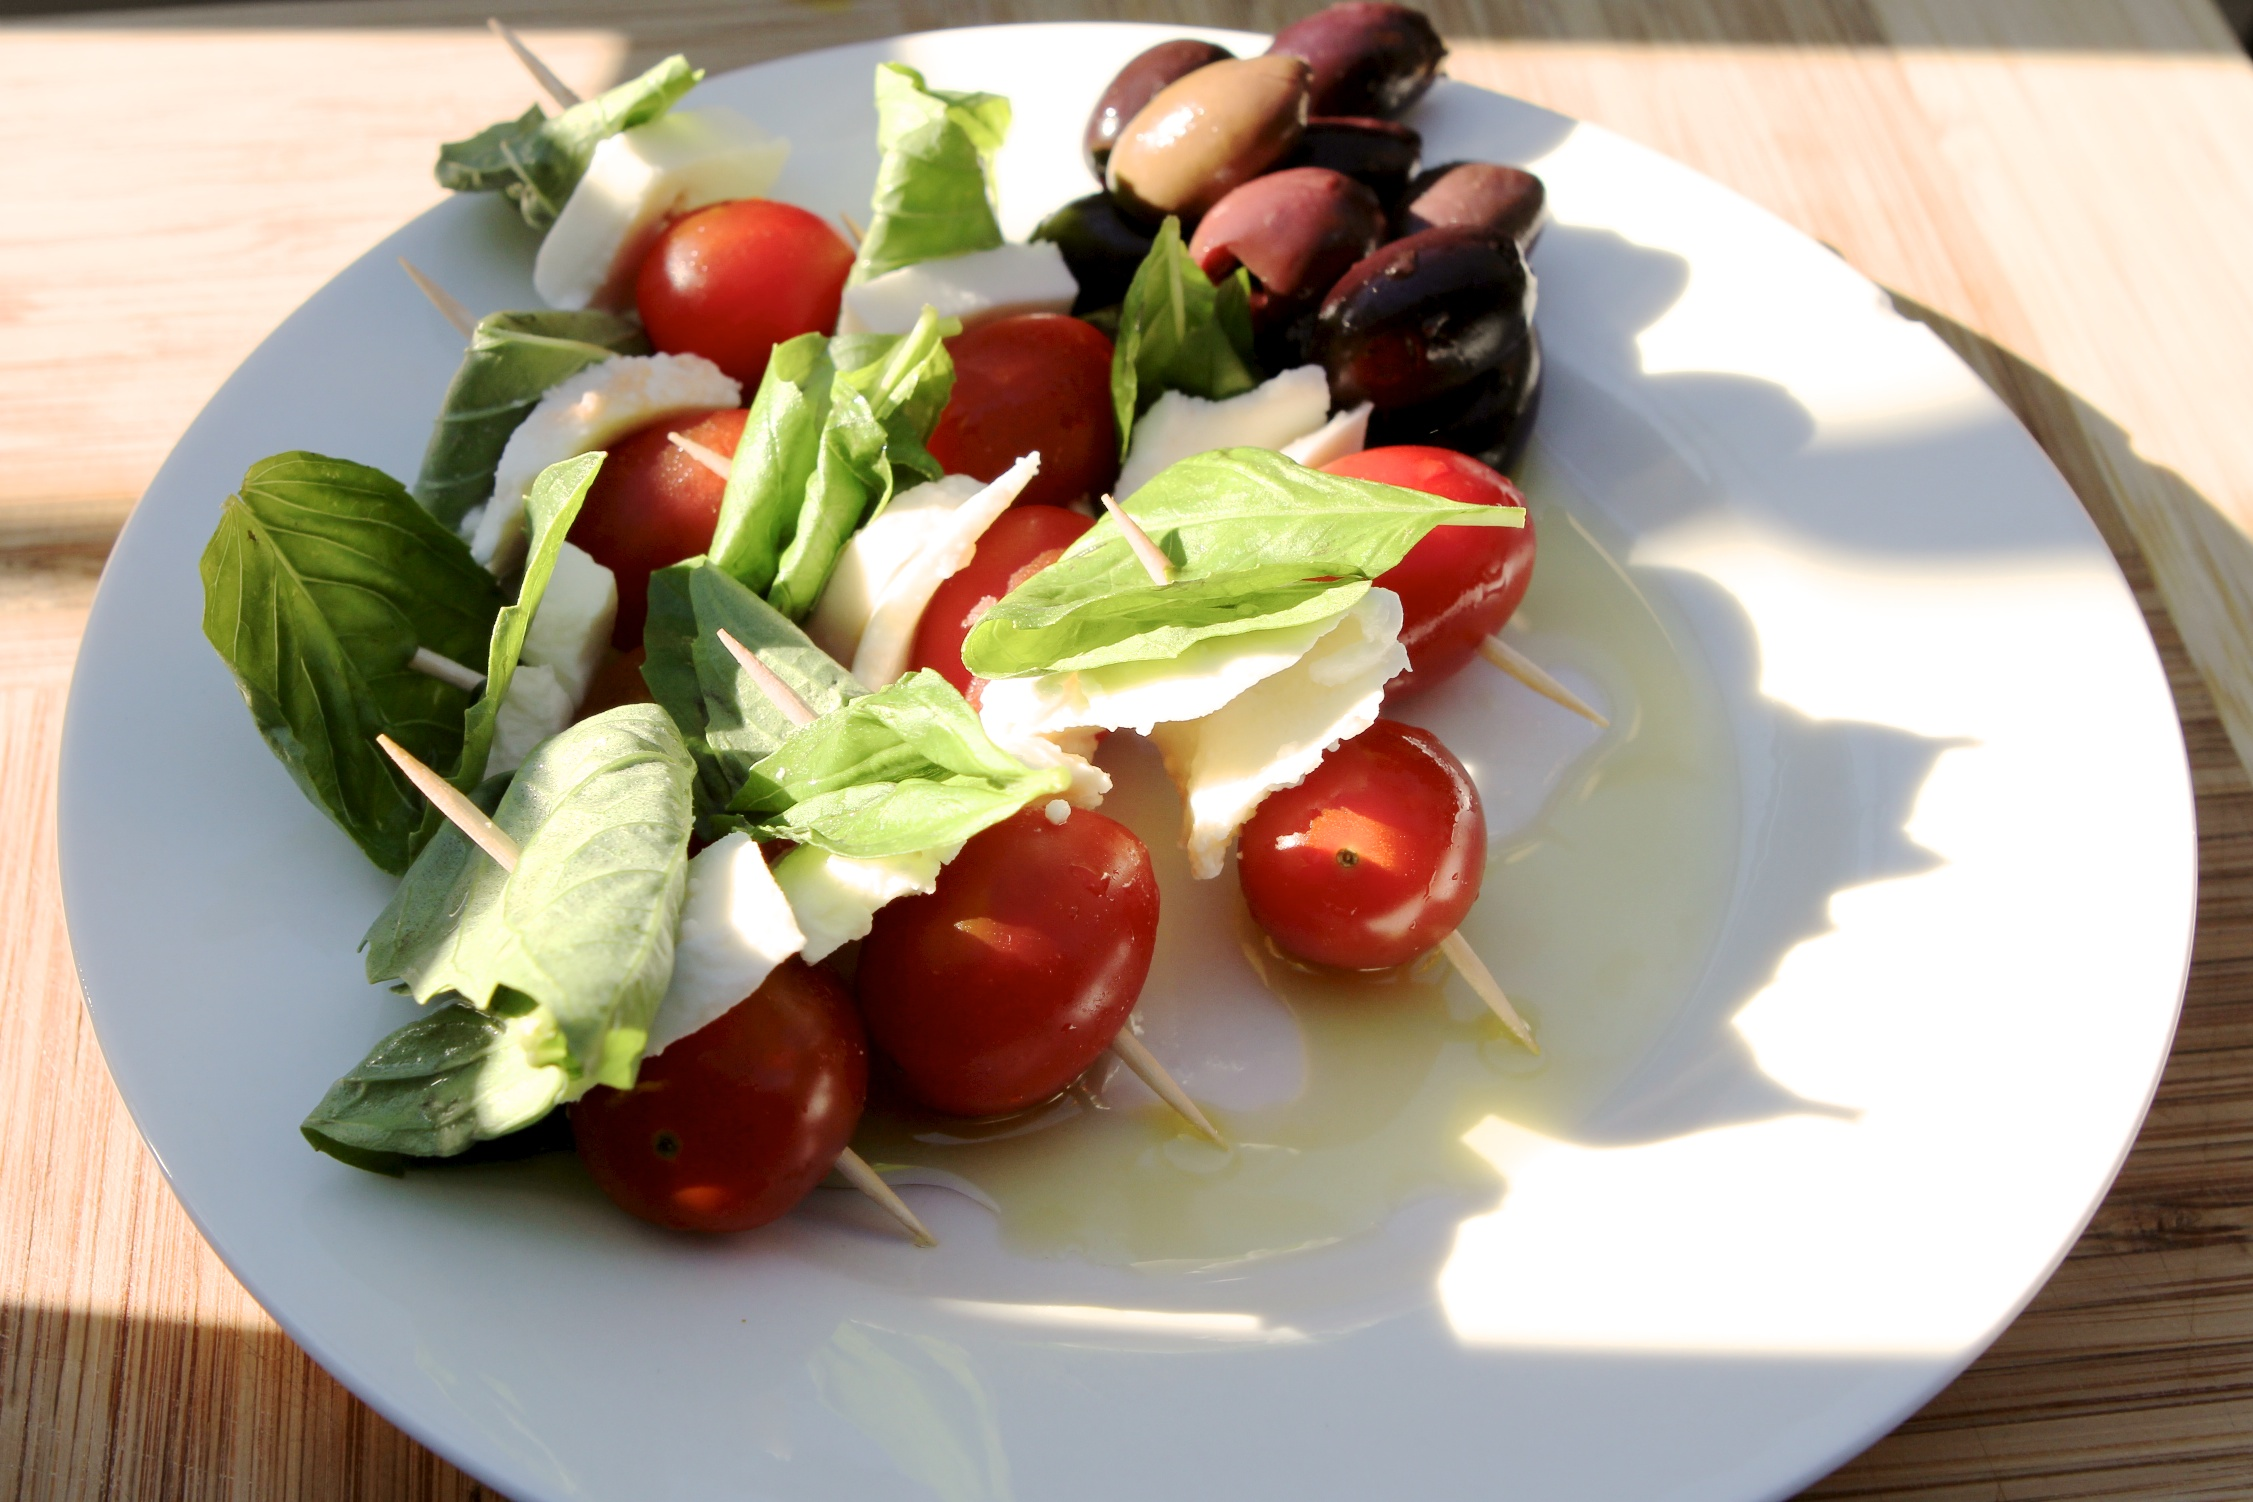 Bocconcini (photo: R Marinho)